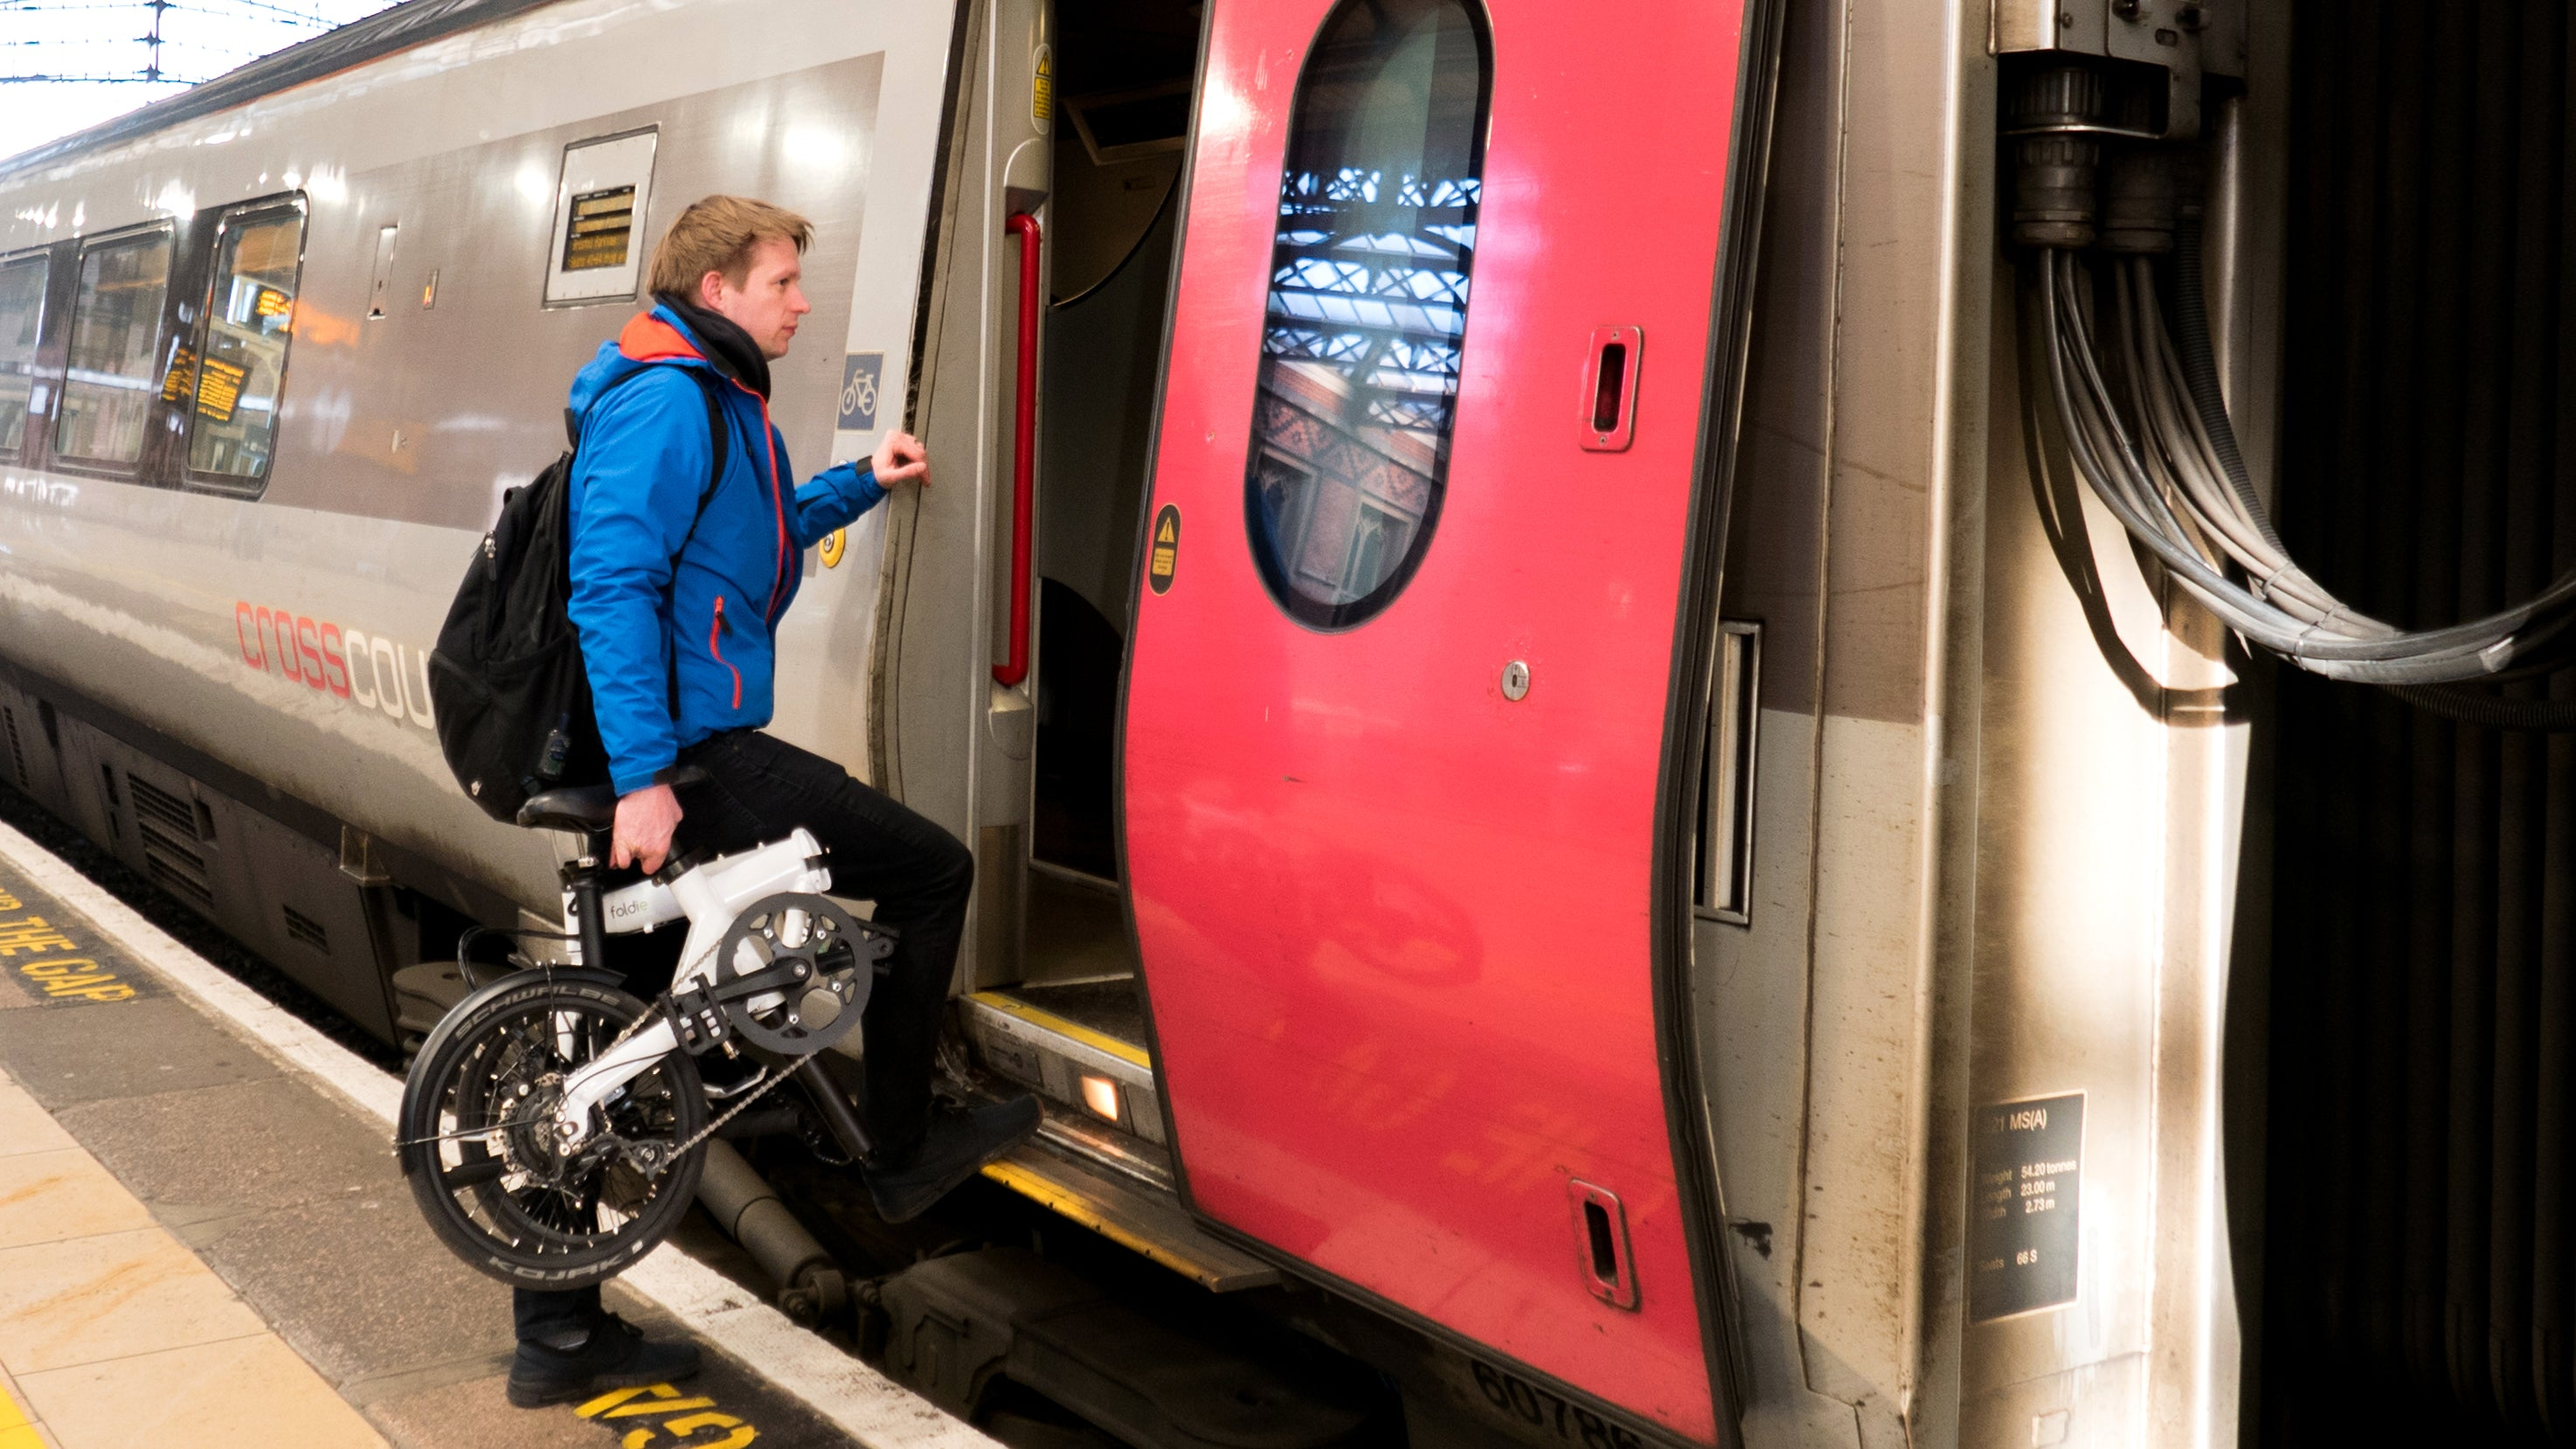 An E-bike that you can take on the train